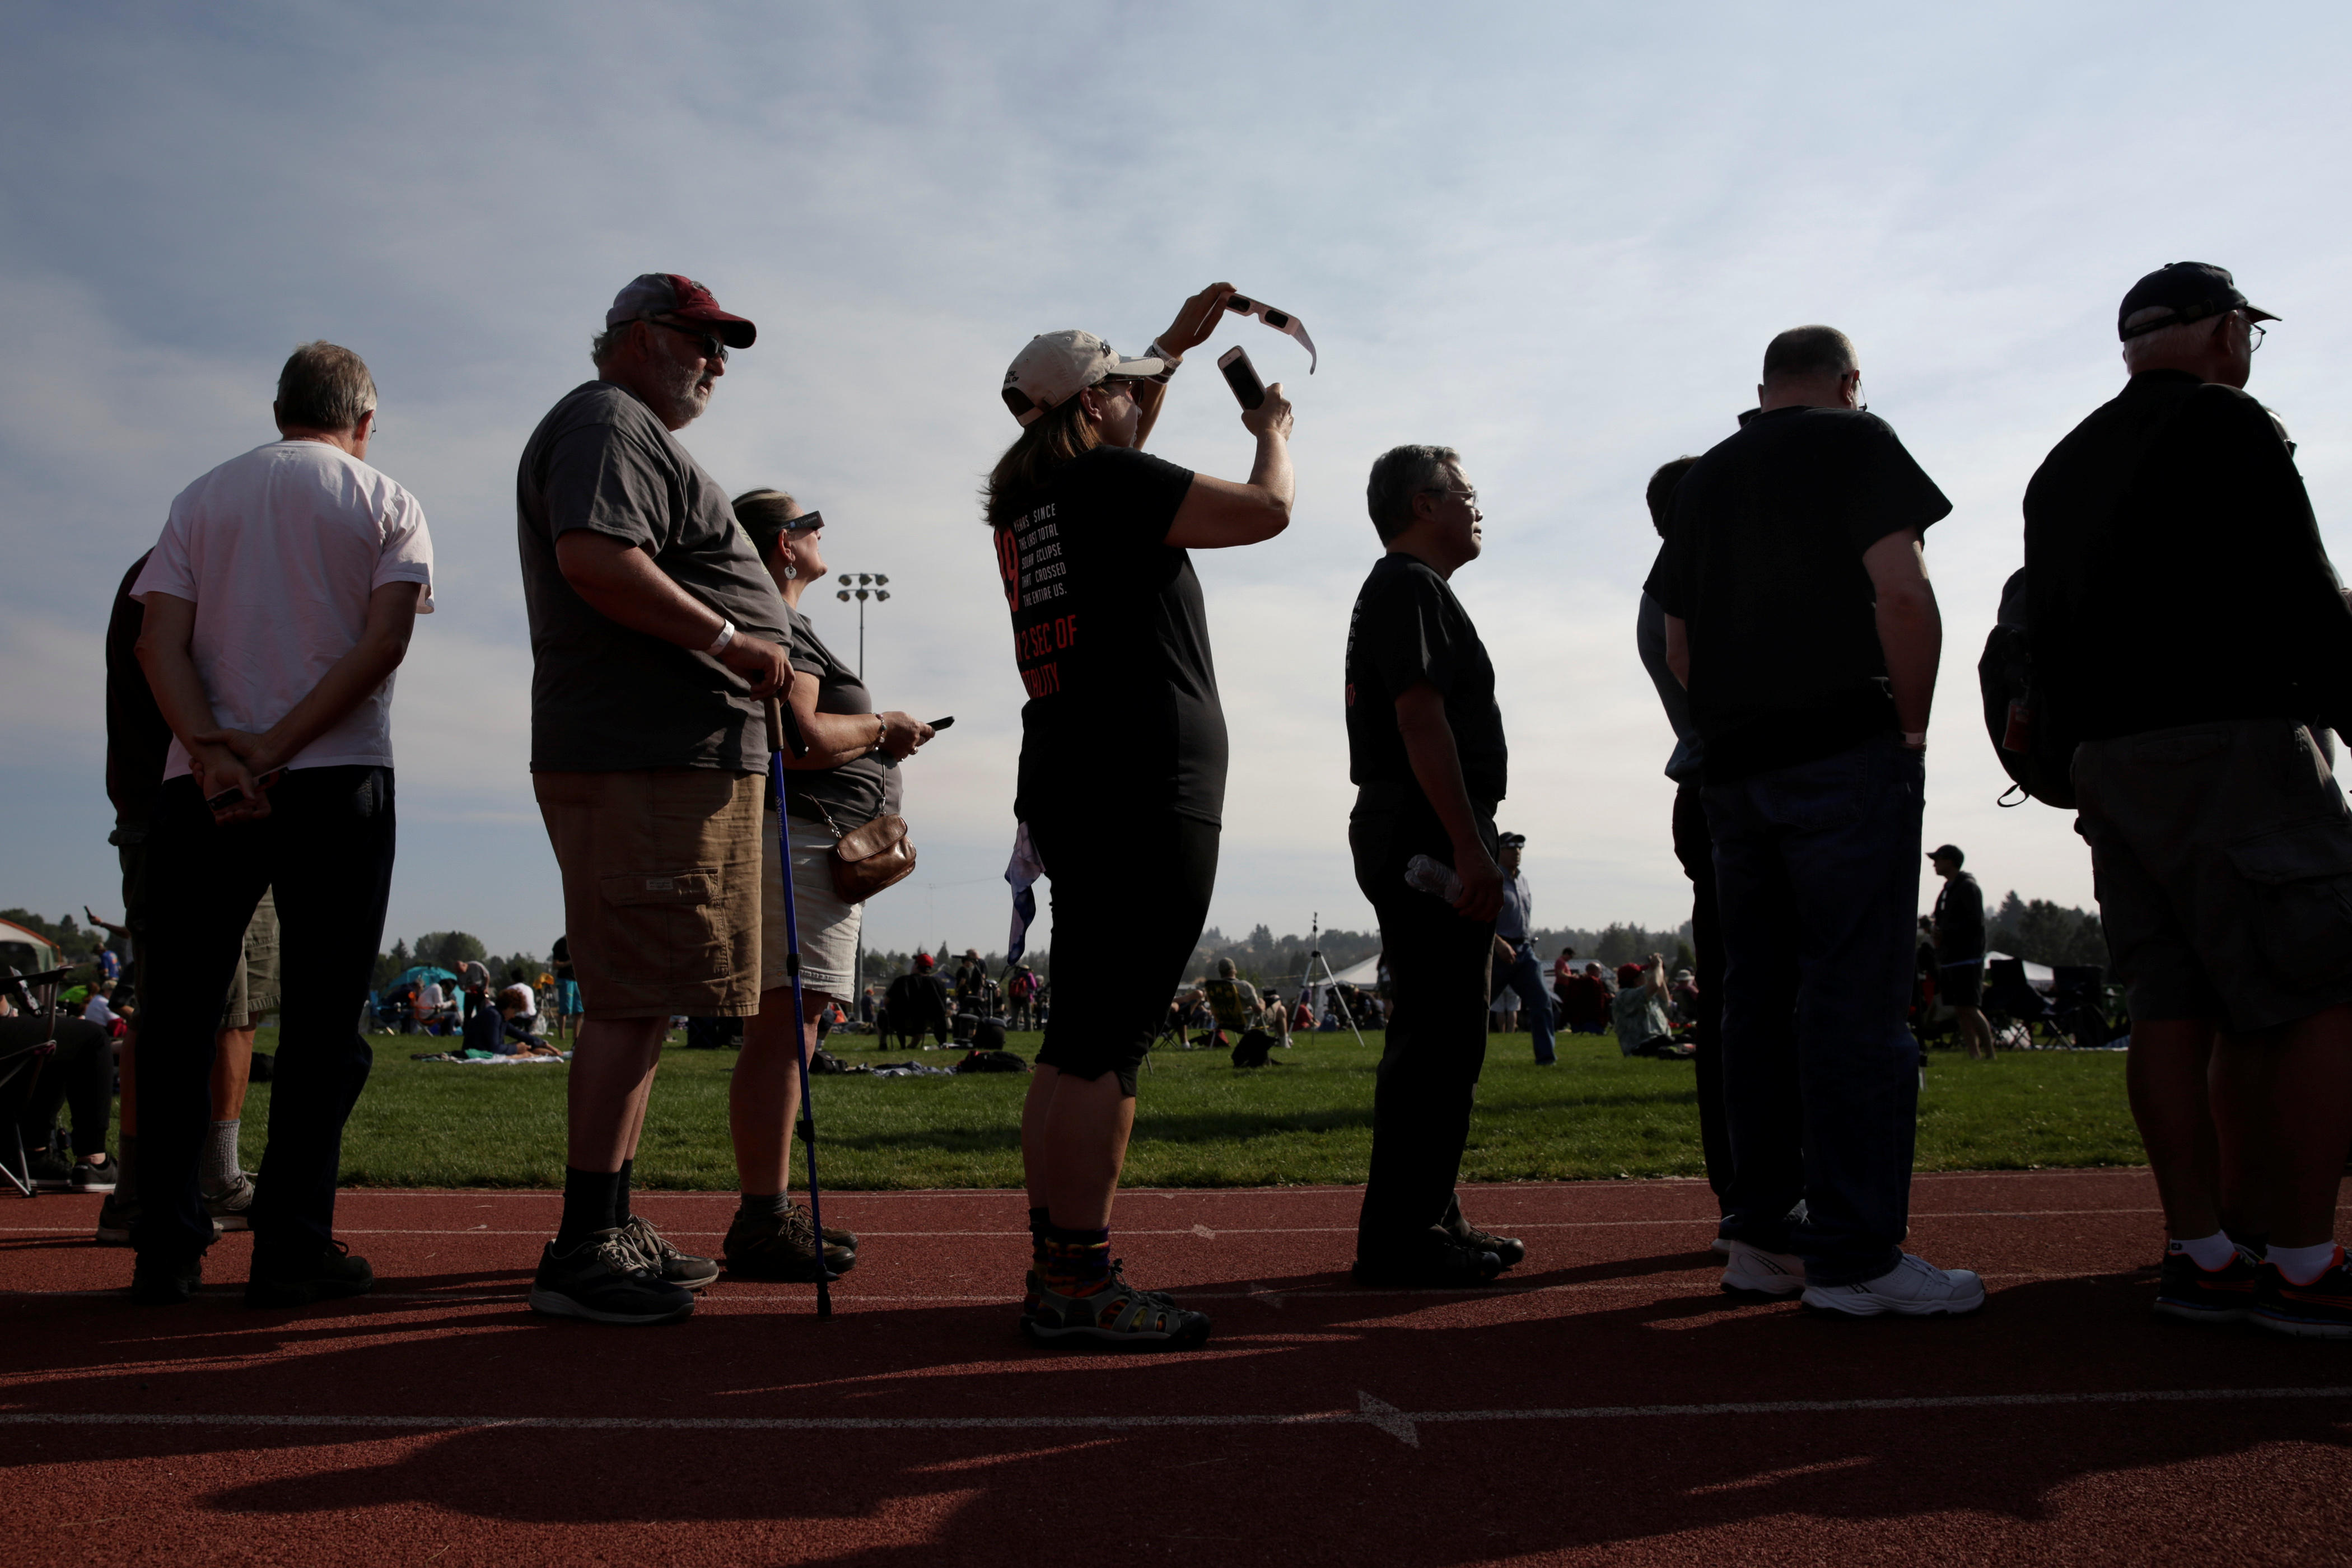 People watch the solar eclipse during the Lowell Observatory Solar Eclipse Experience at Madras High School in Madras, Oregon on Aug. 21, 2017.